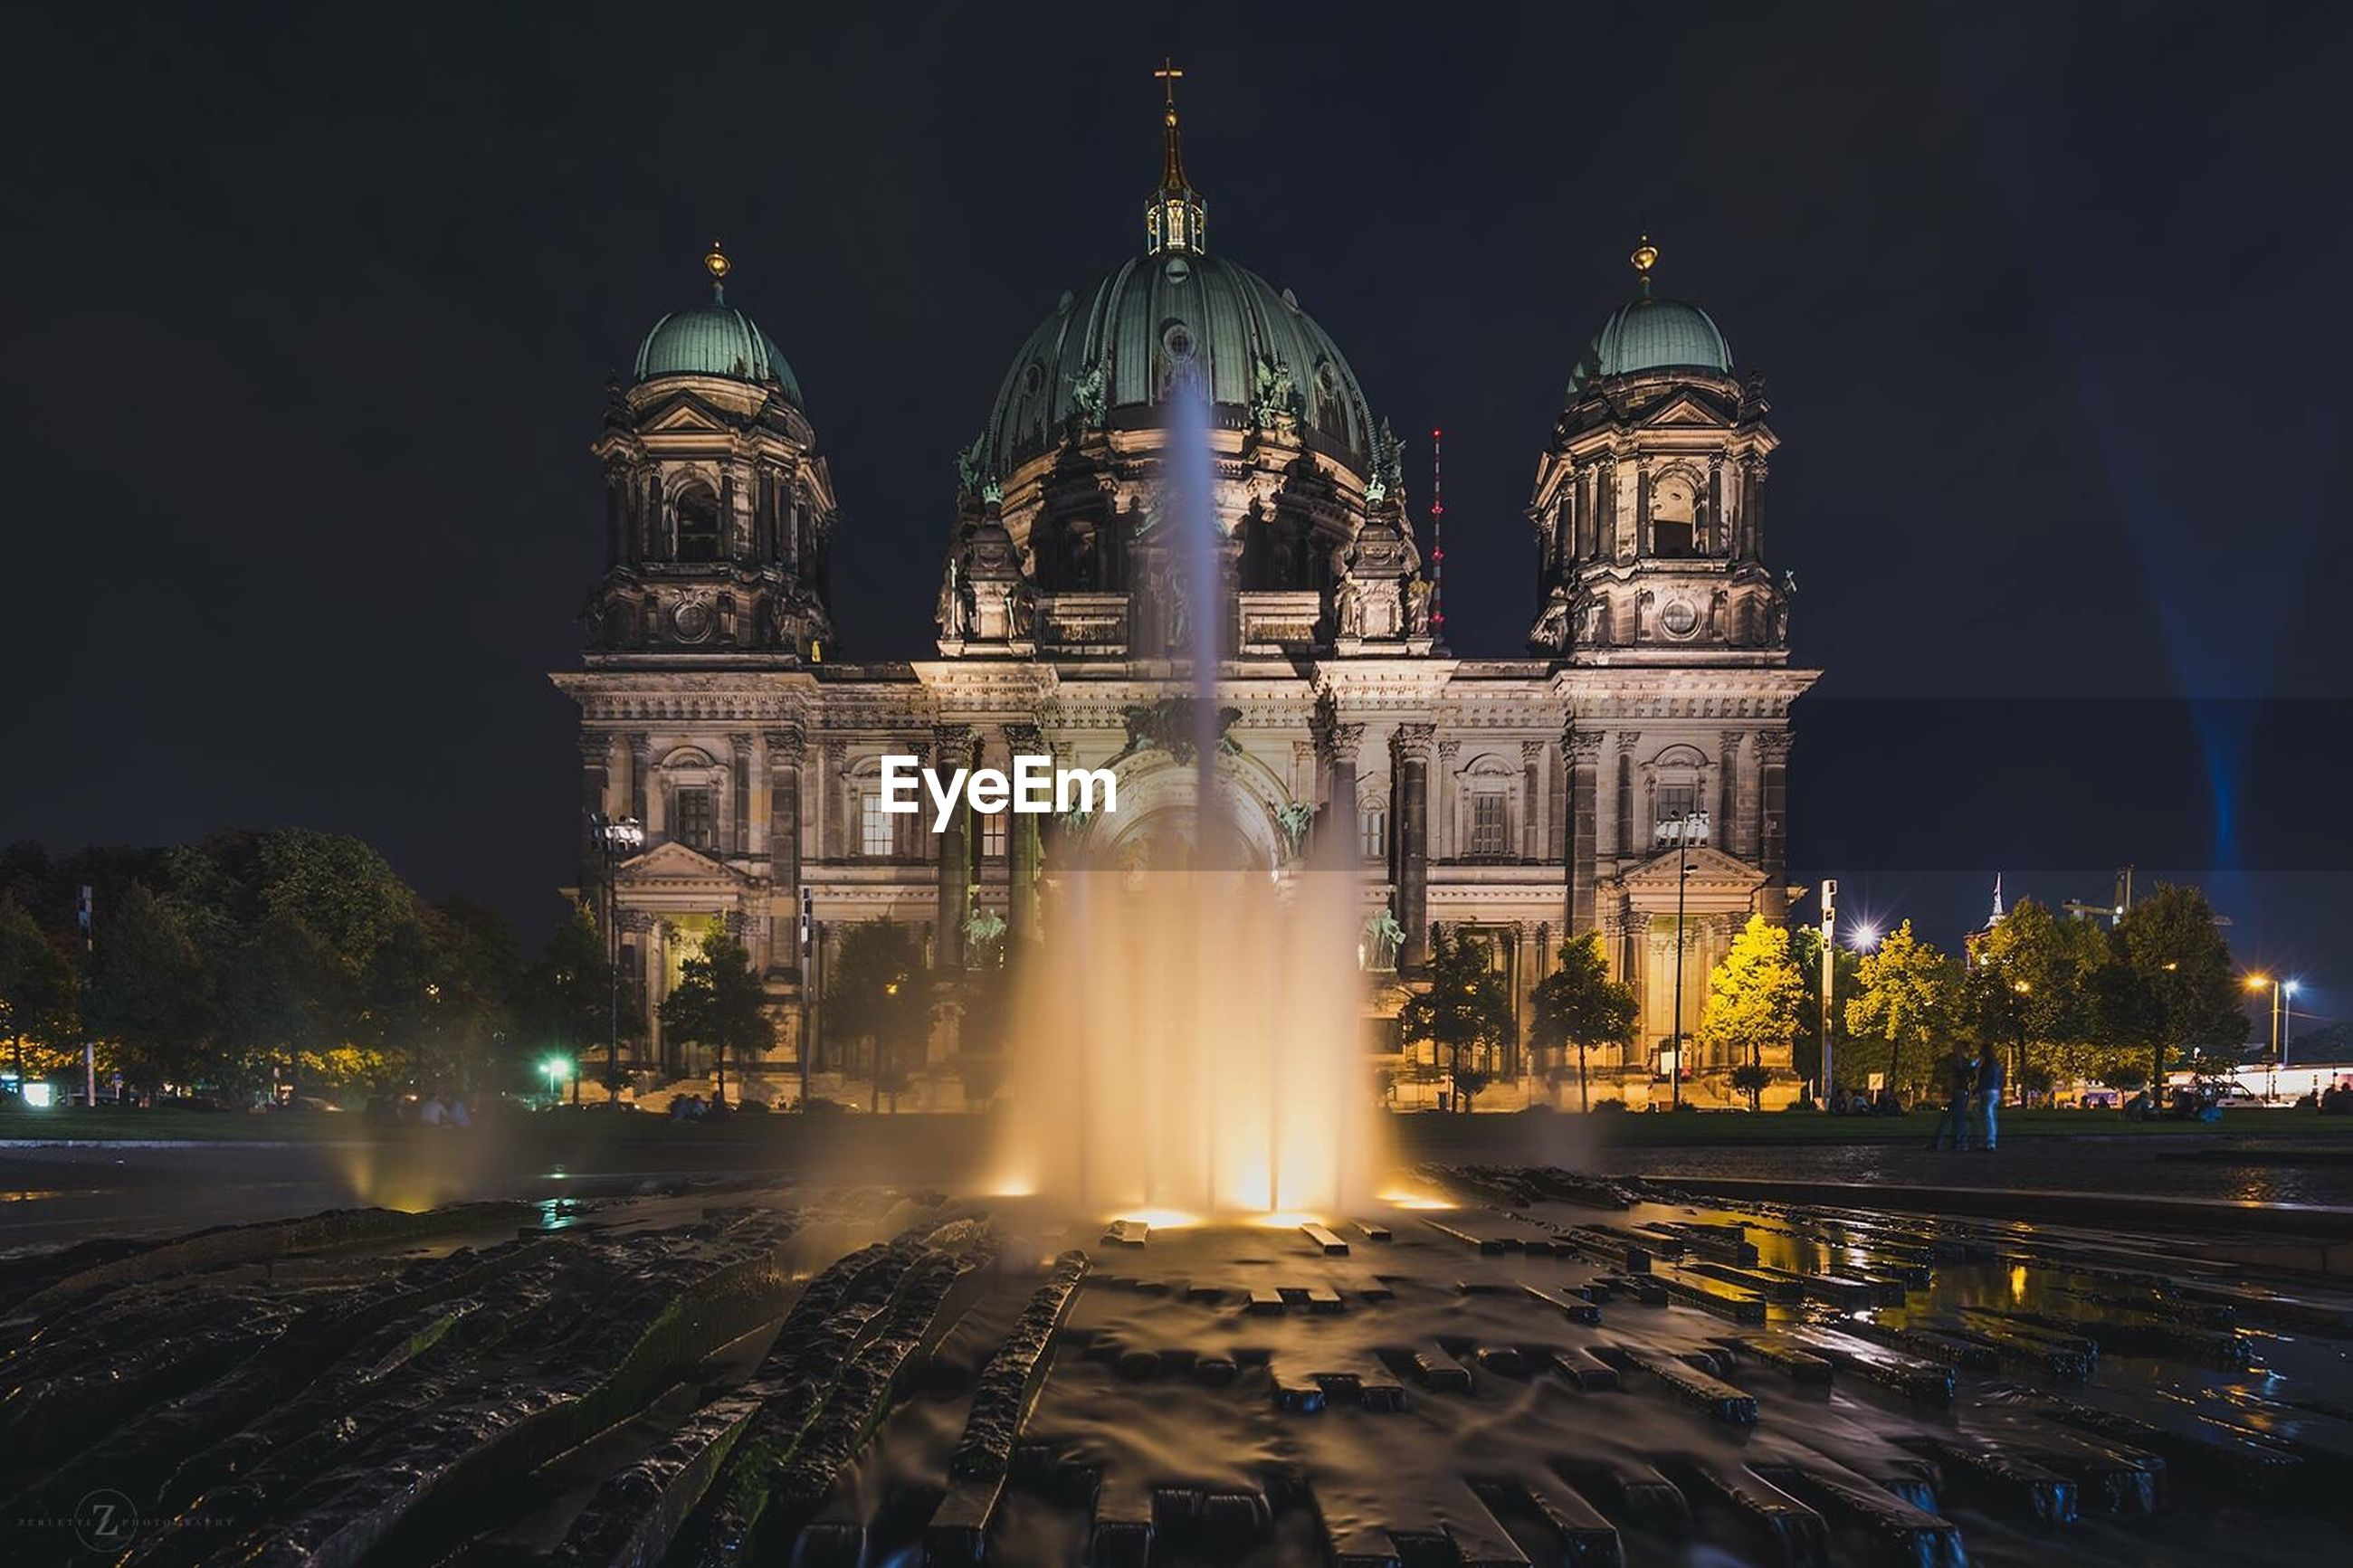 Fountain in front of berlin cathedral at night